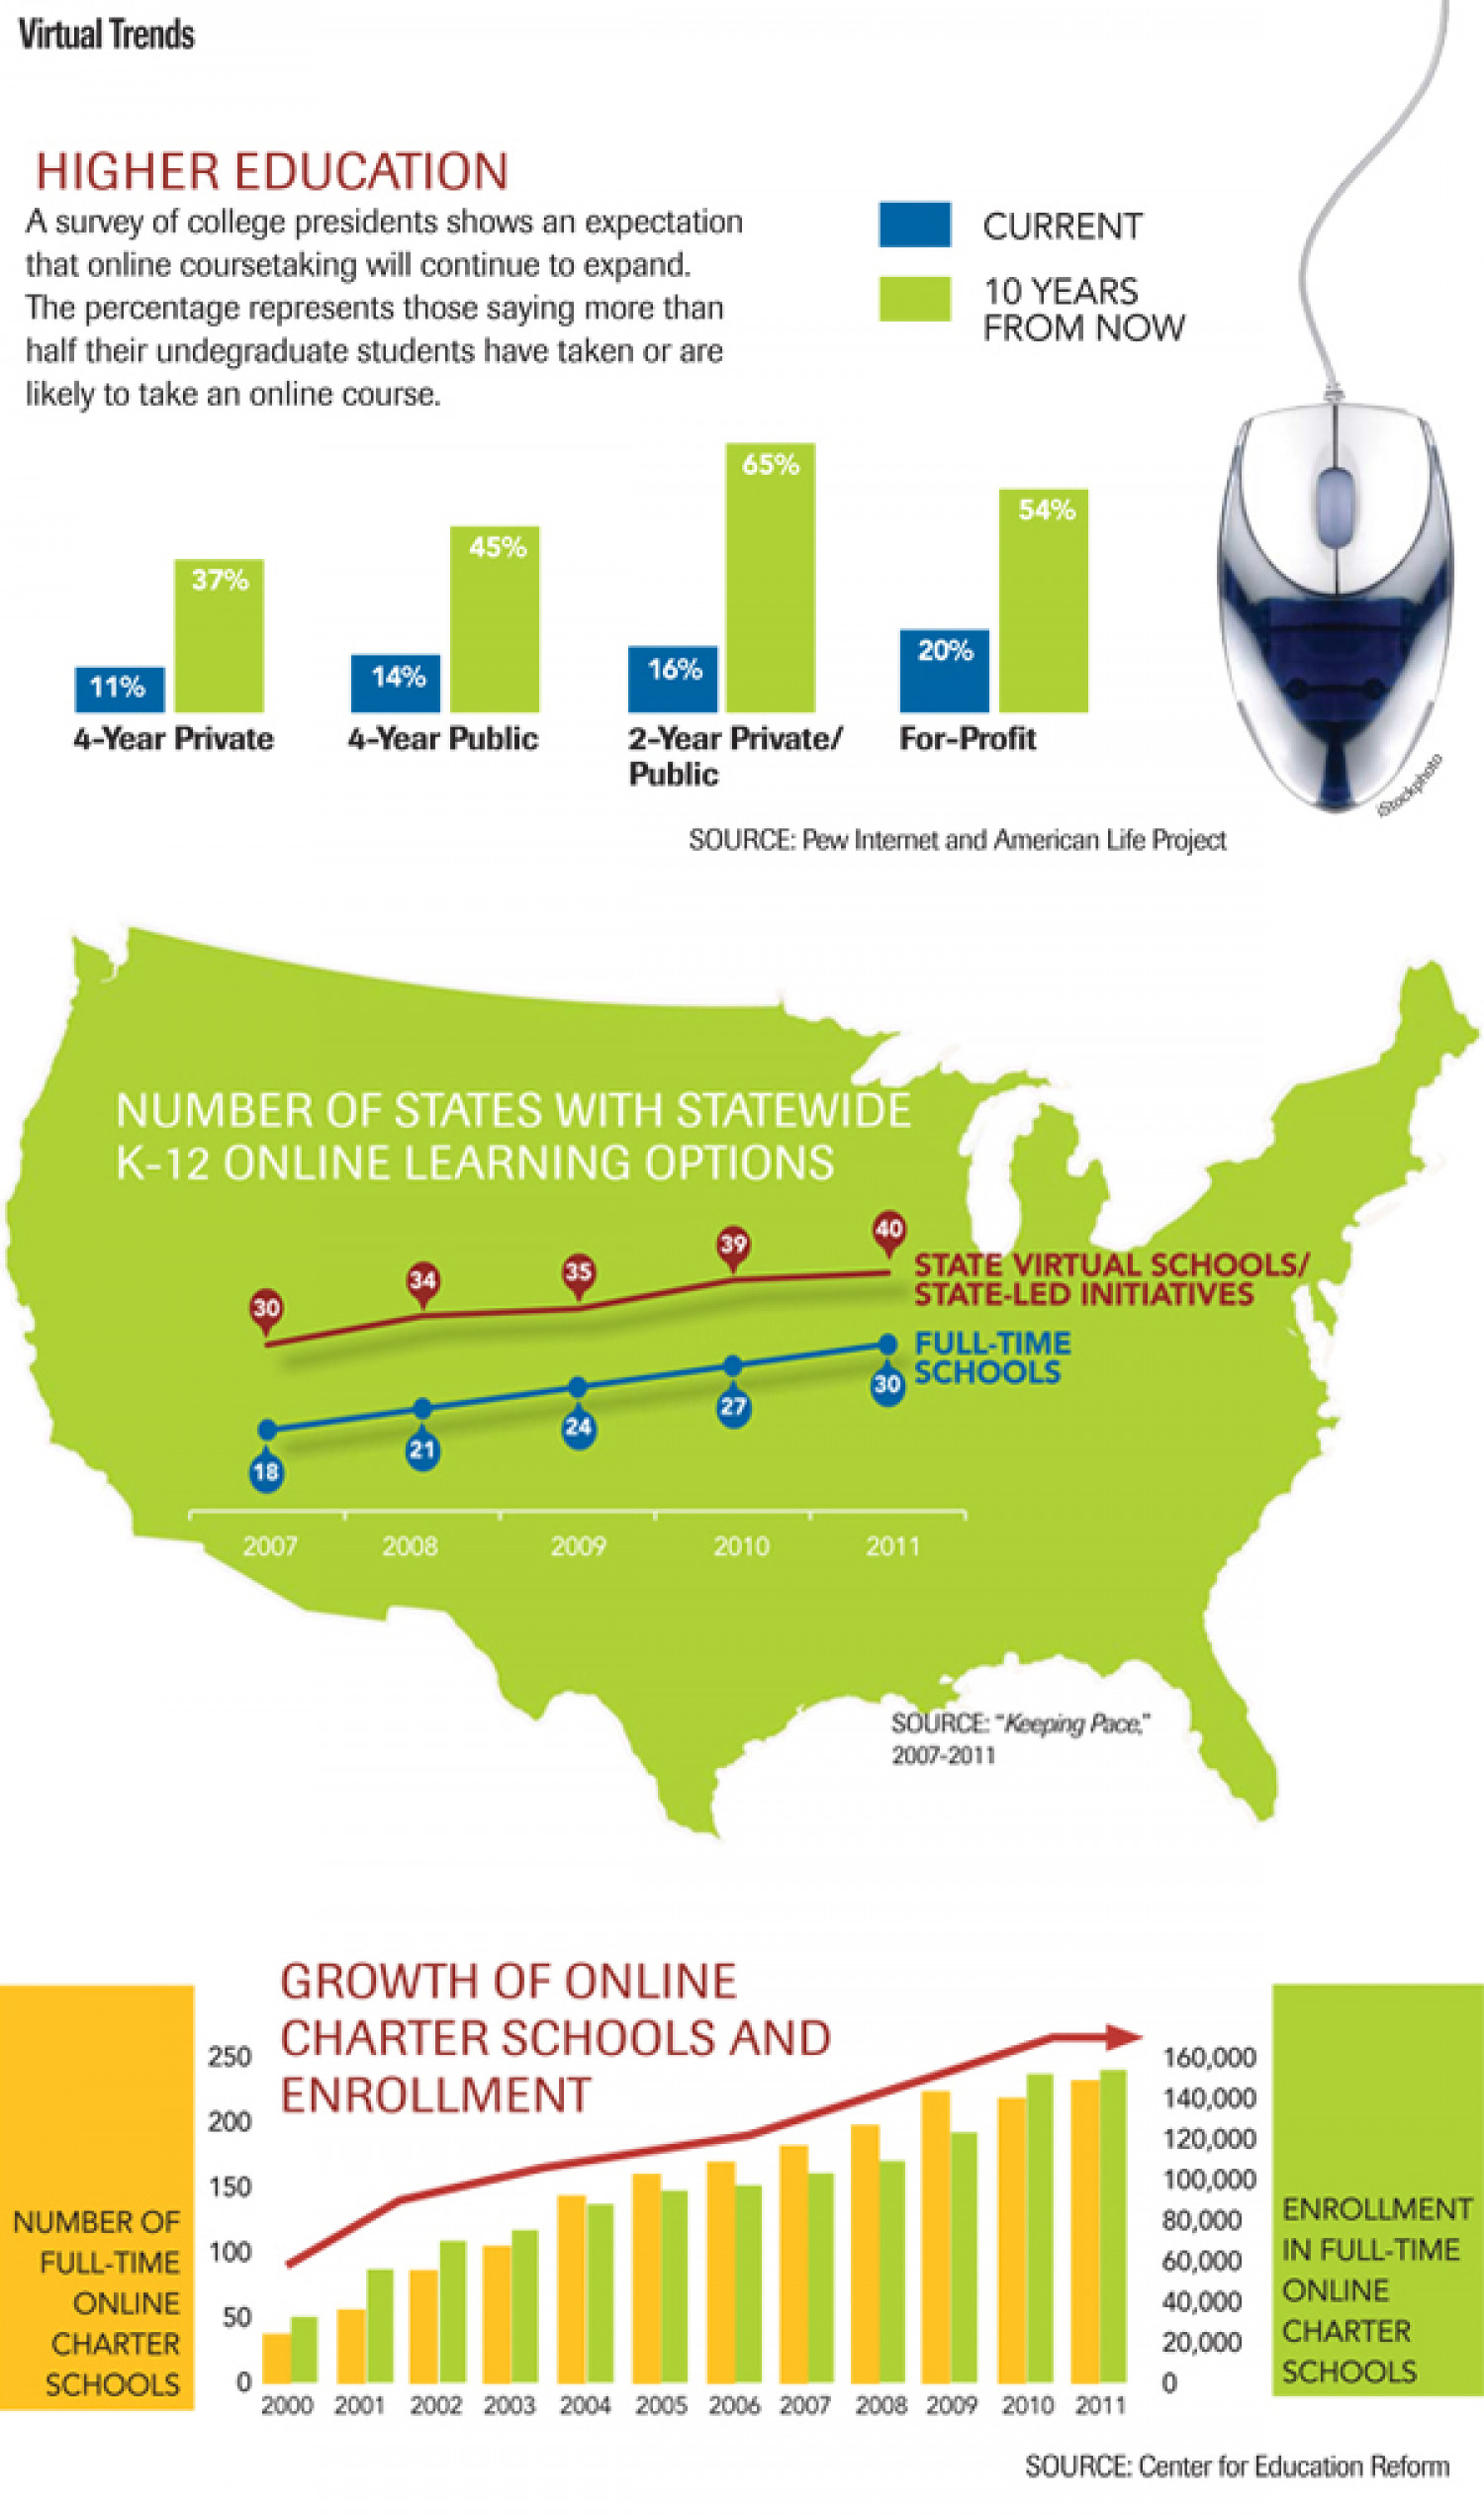 Virtual Trends: Higher Education Infographic